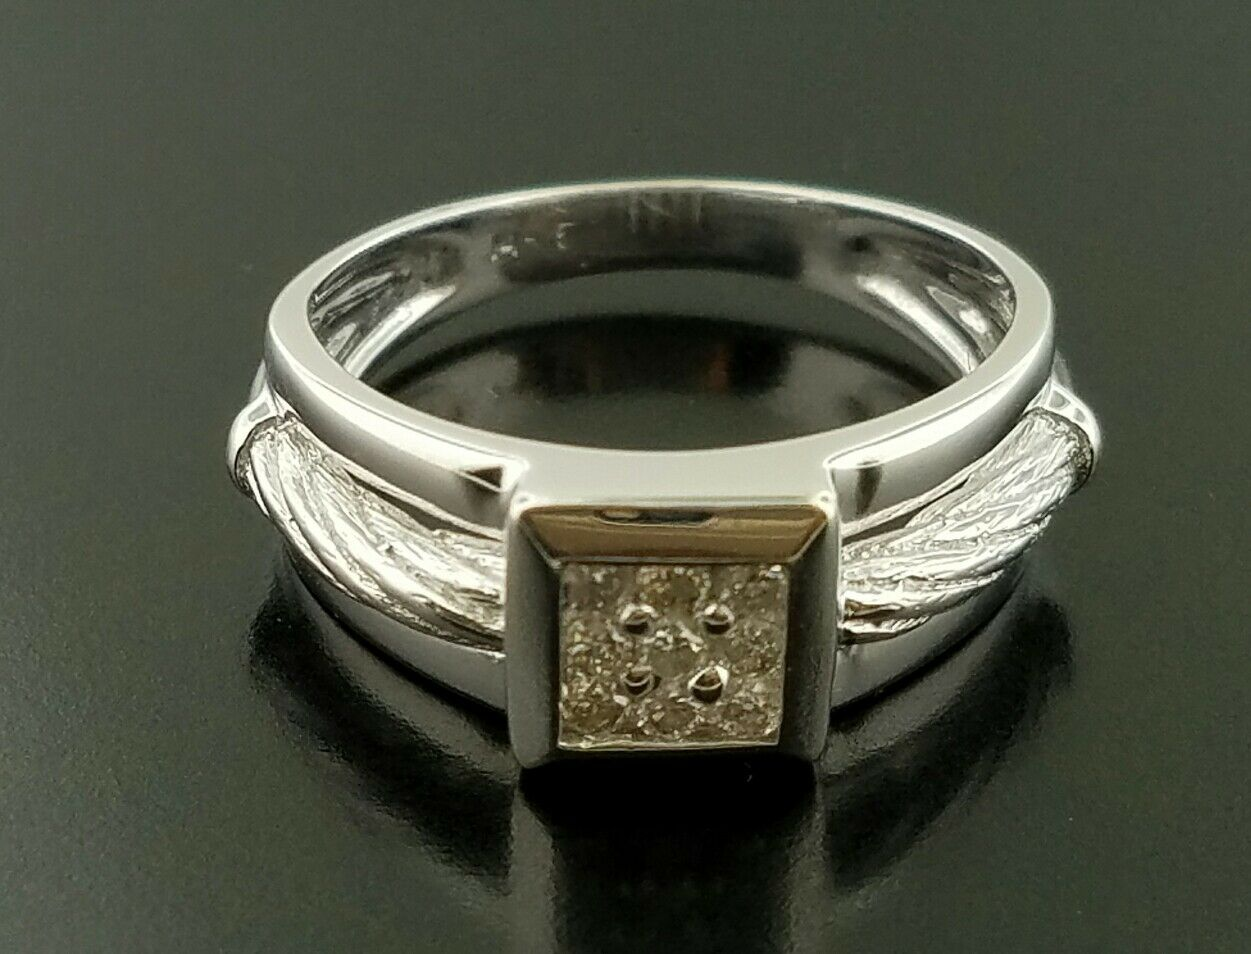 Estate  1200 14K White gold Ring with Diamond Set Square